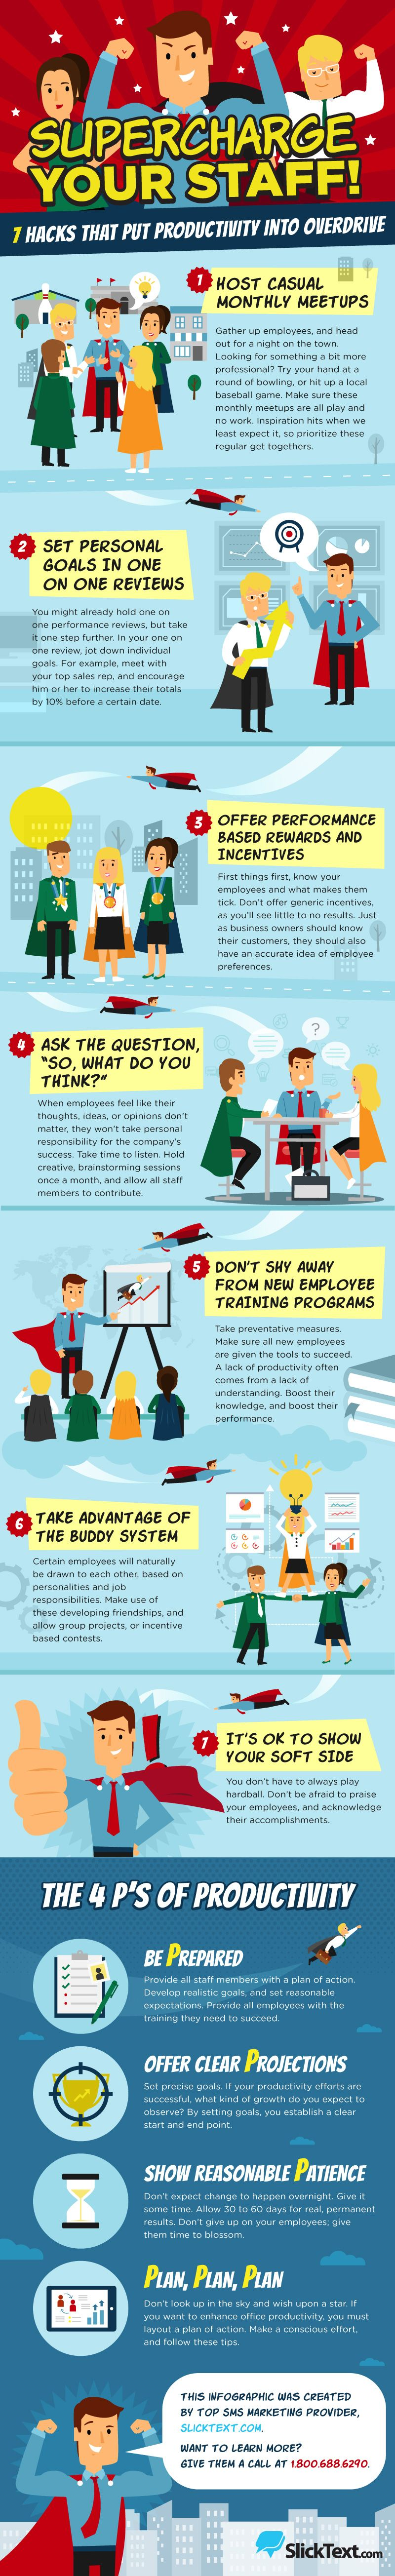 Supercharge Your Staff: 7 Hacks That Put Productivity Into Overdrive #Infographic